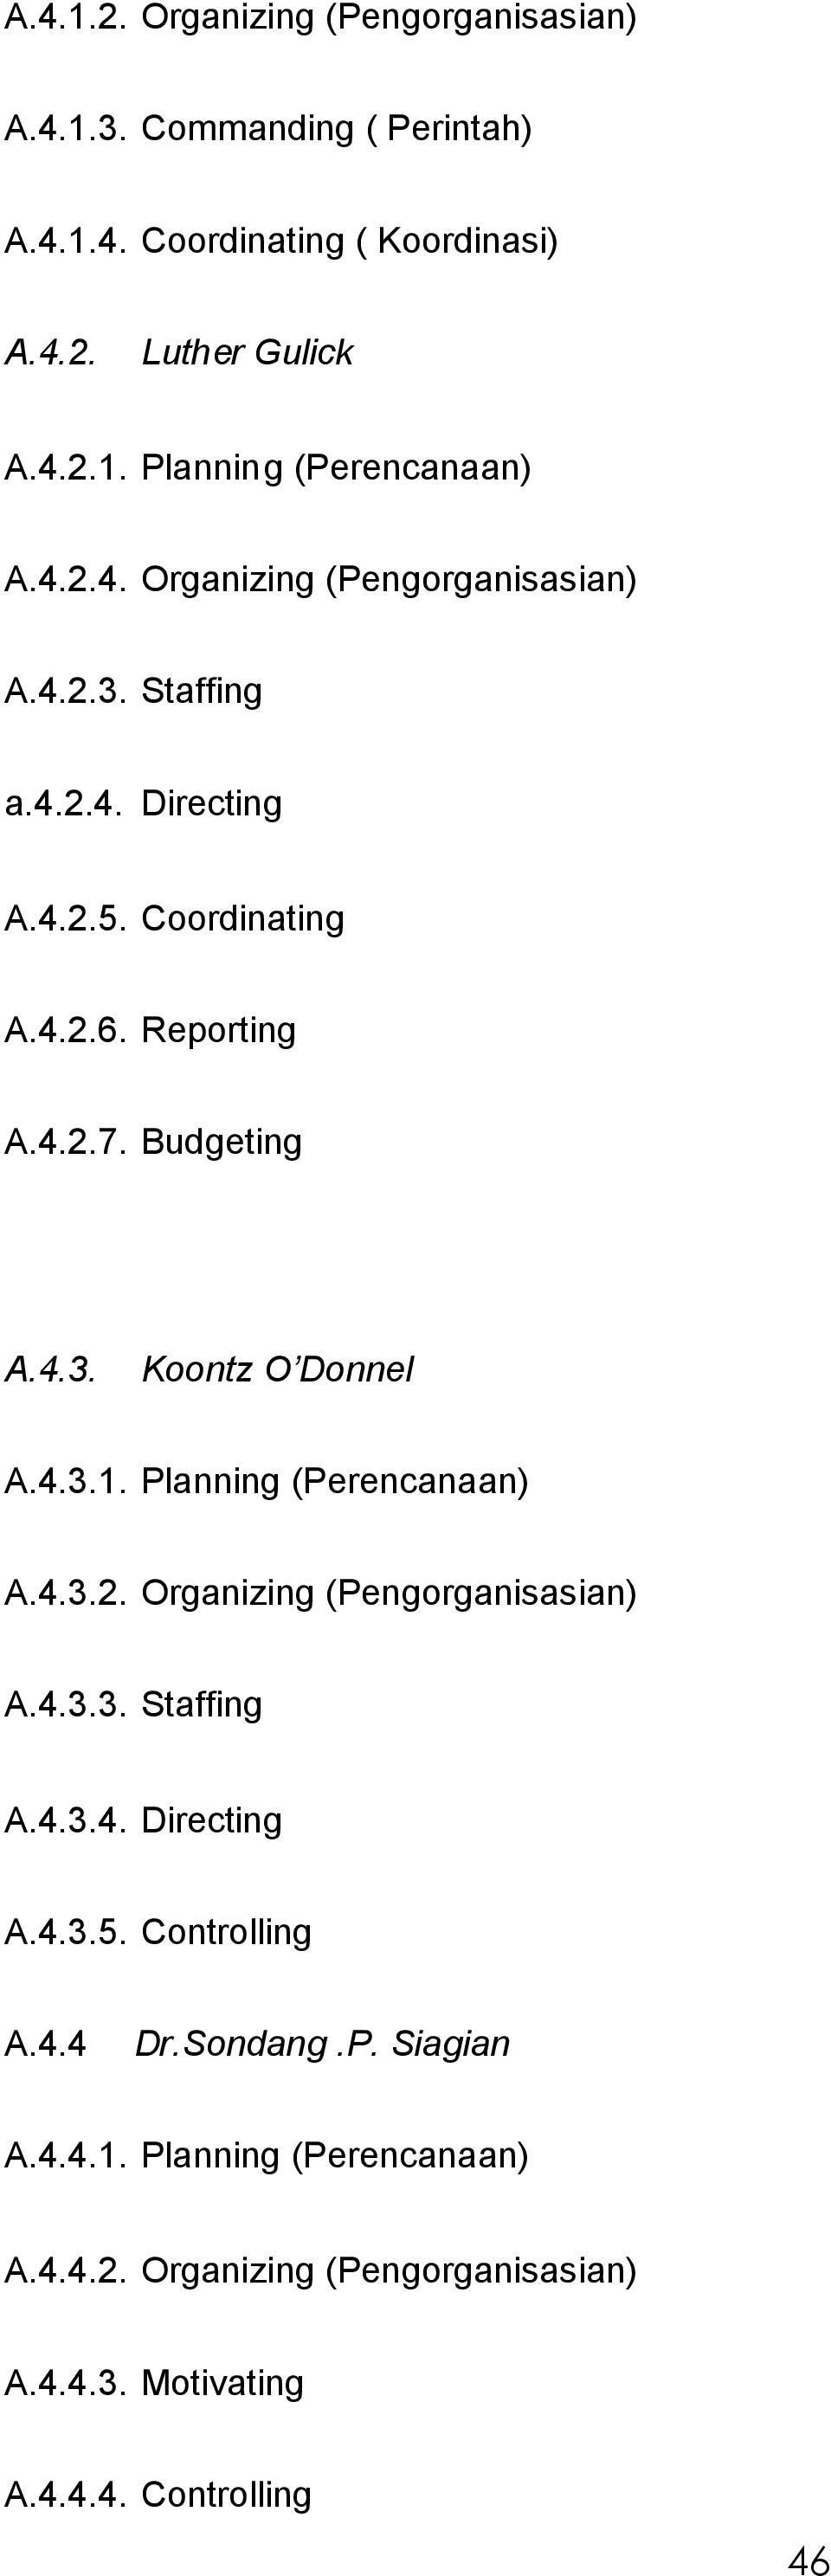 4.3.1. Planning (Perencanaan) A.4.3.2. Organizing (Pengorganisasian) A.4.3.3. Staffing A.4.3.4. Directing A.4.3.5. Controlling A.4.4 Dr.Sondang.P. Siagian A.